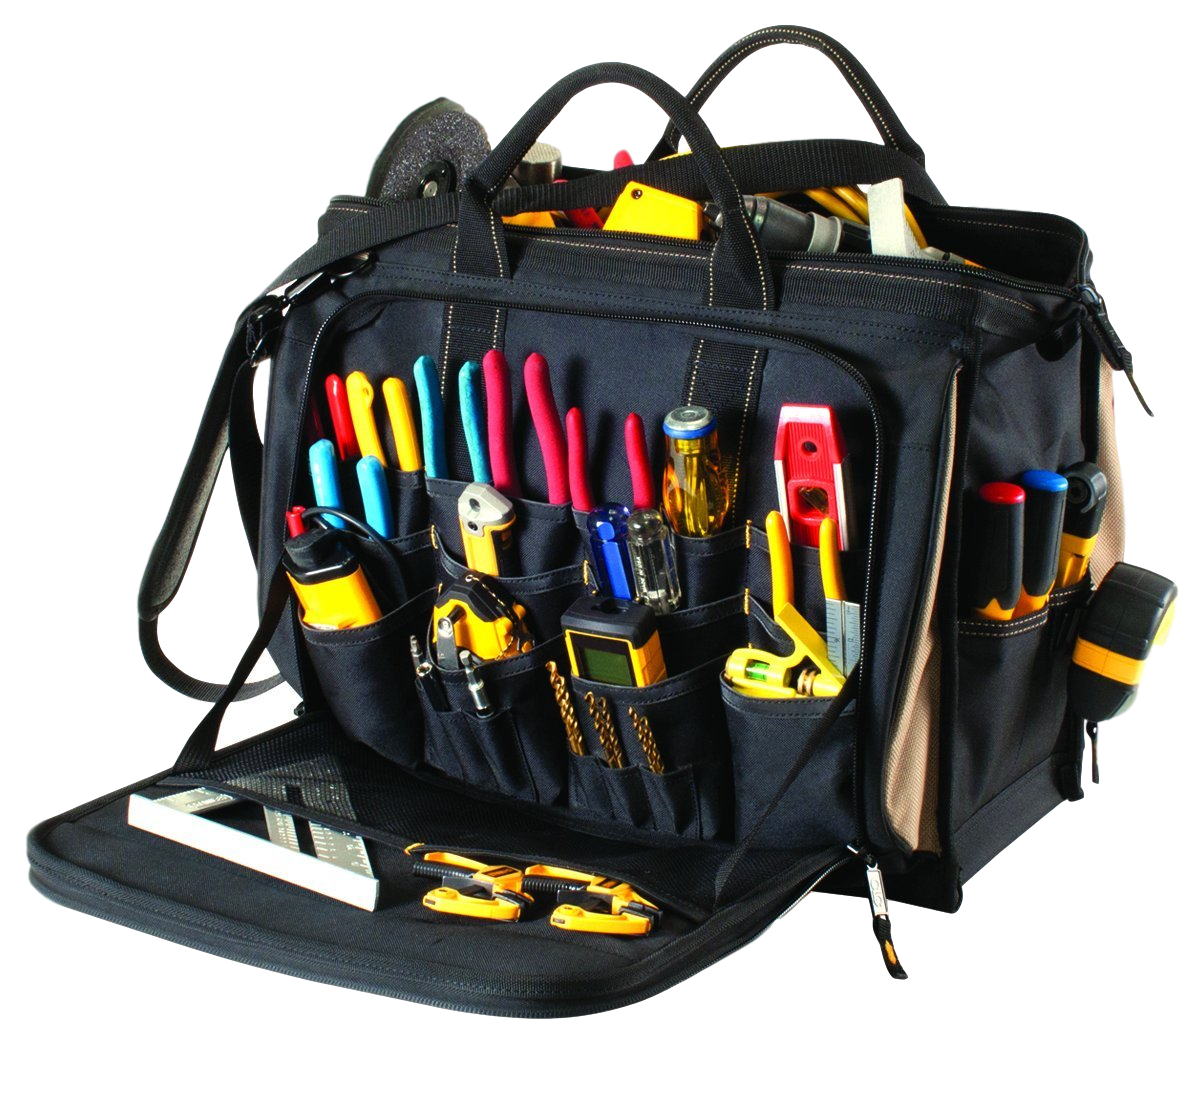 CLC-Custom-LeatherCraft-1539-with-tools